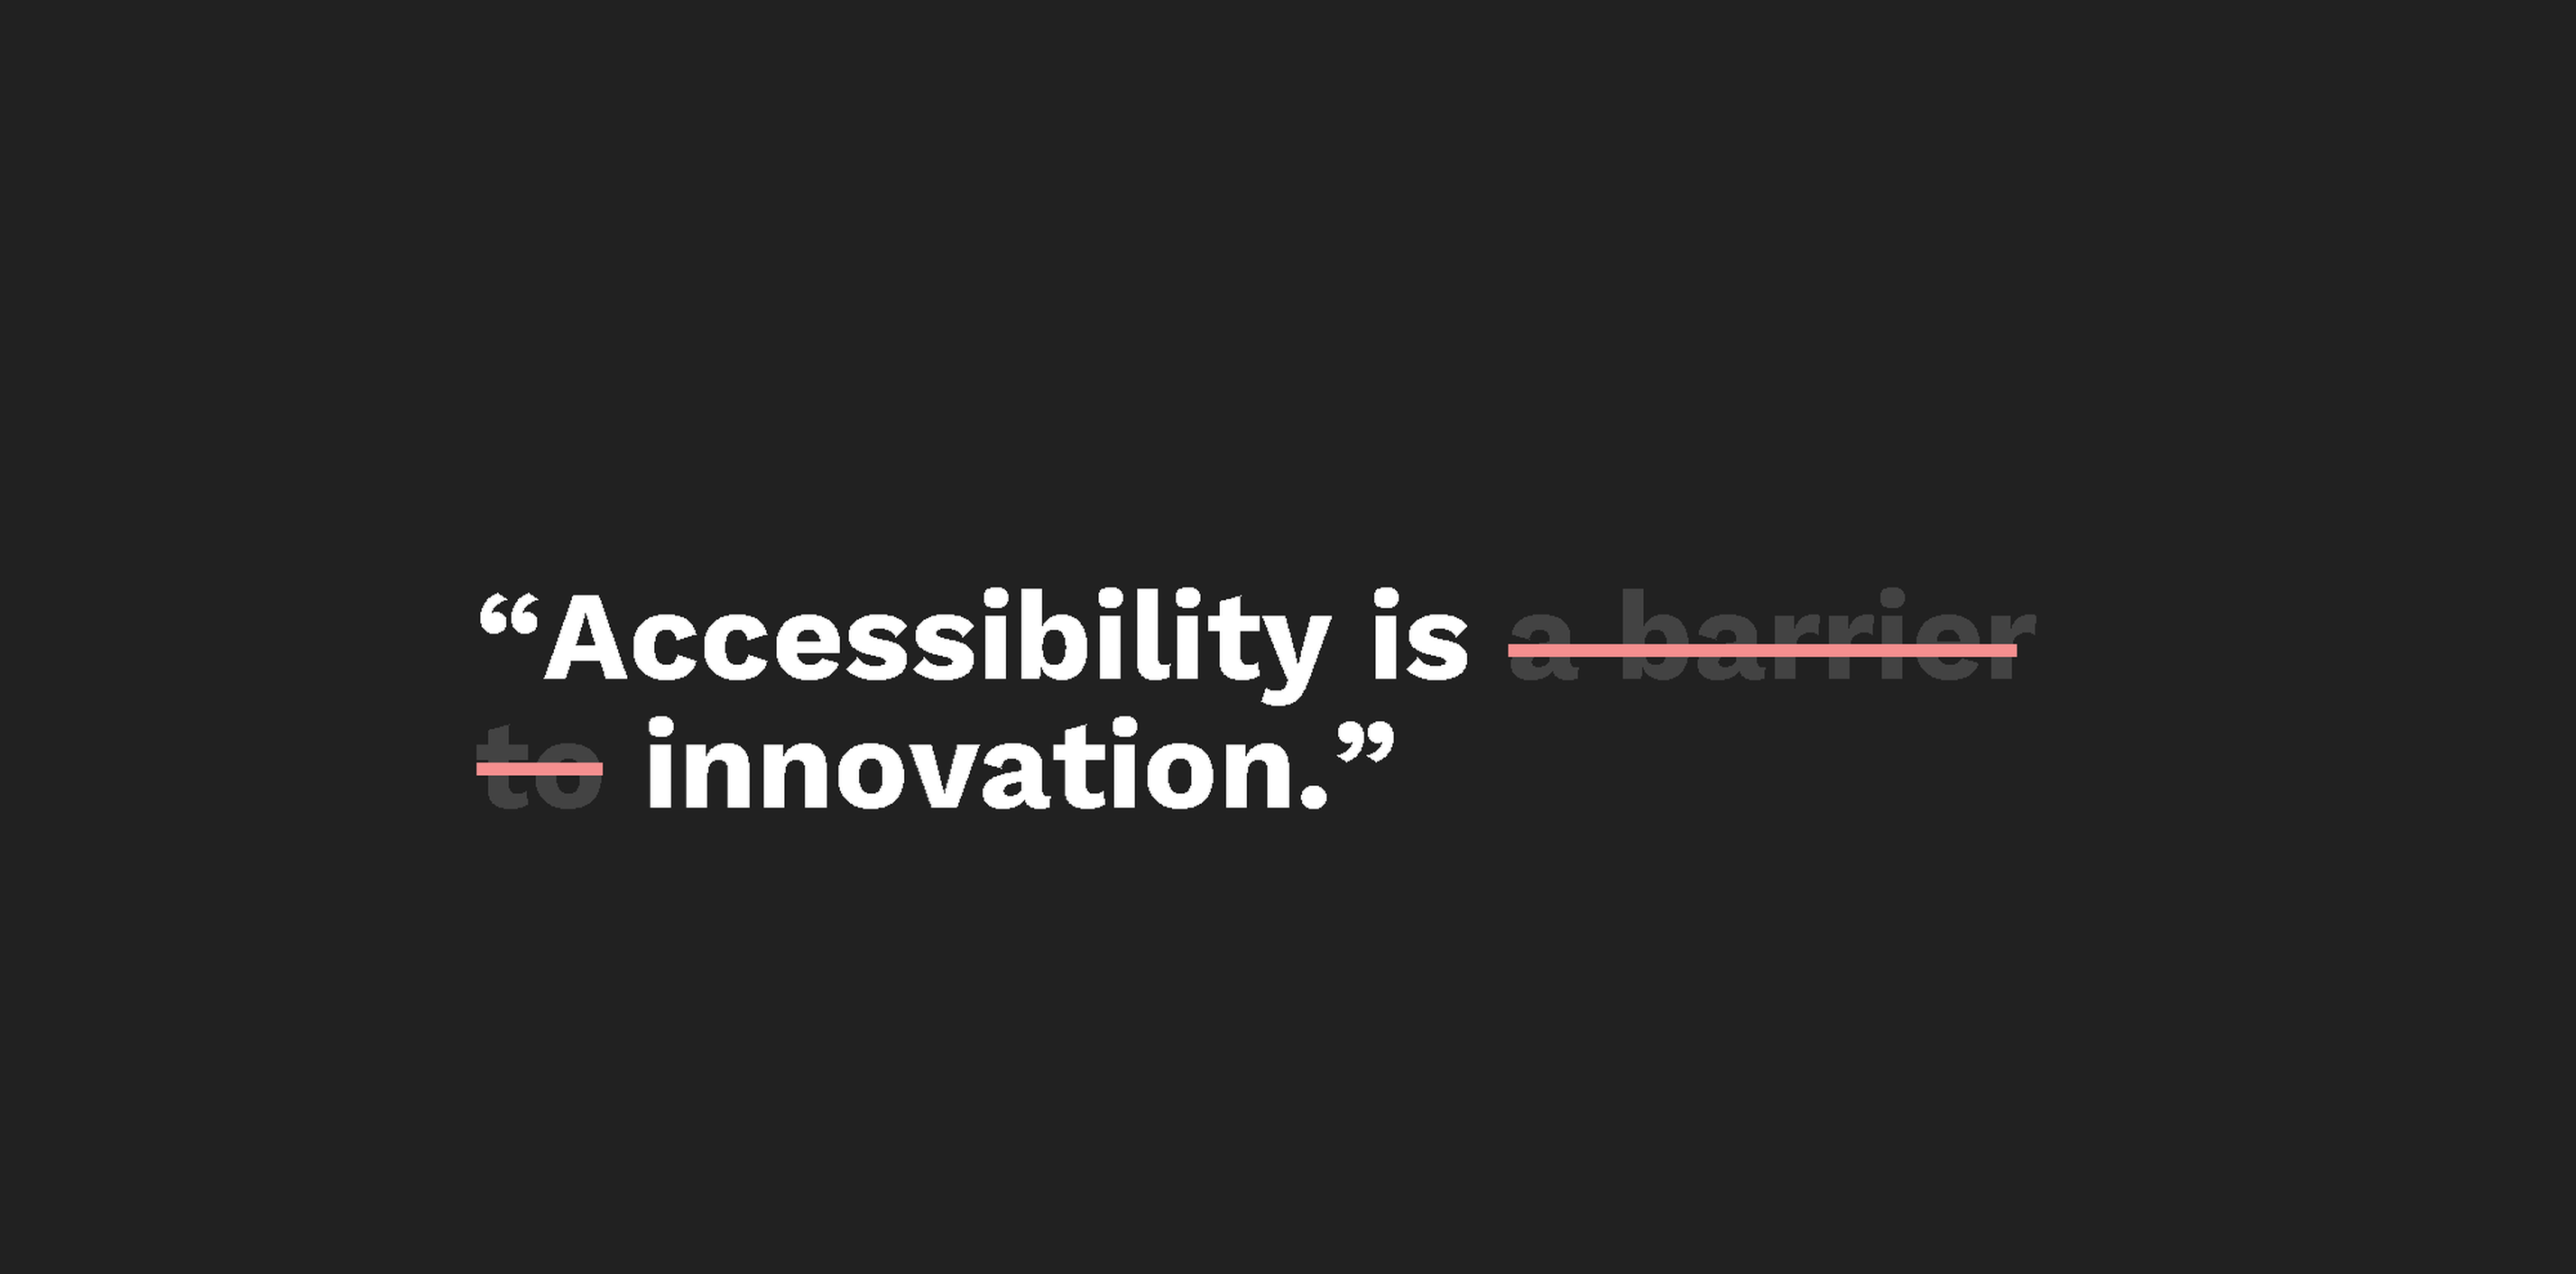 Accesability is innovation.